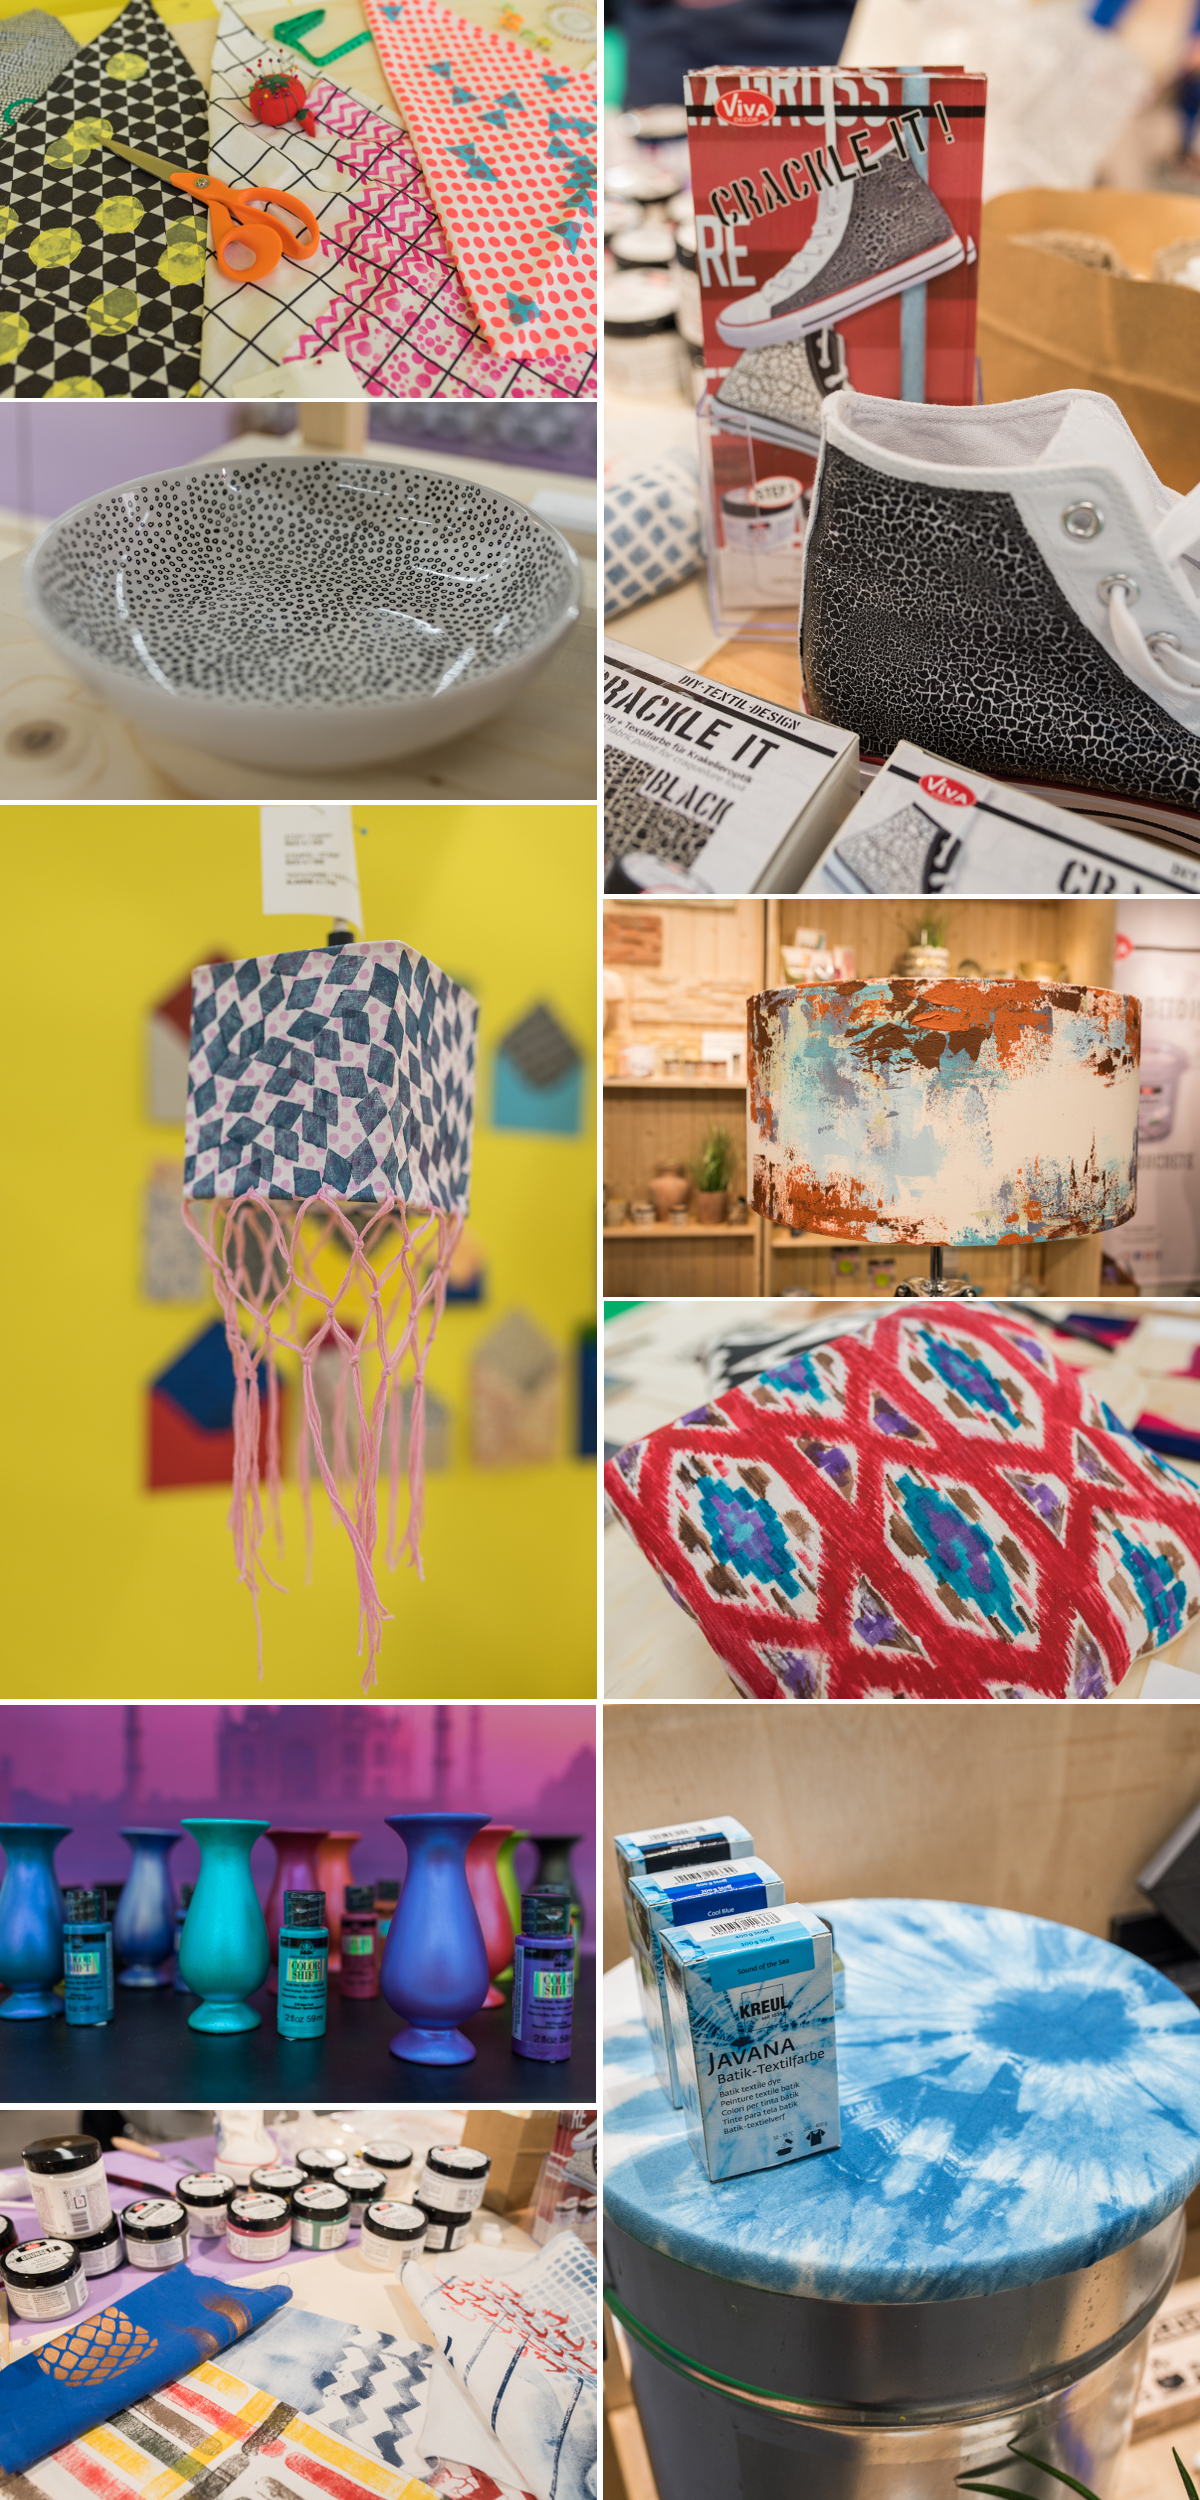 Bilder von der Creative World Messe 2017 in Frankfurt und DIY Trends